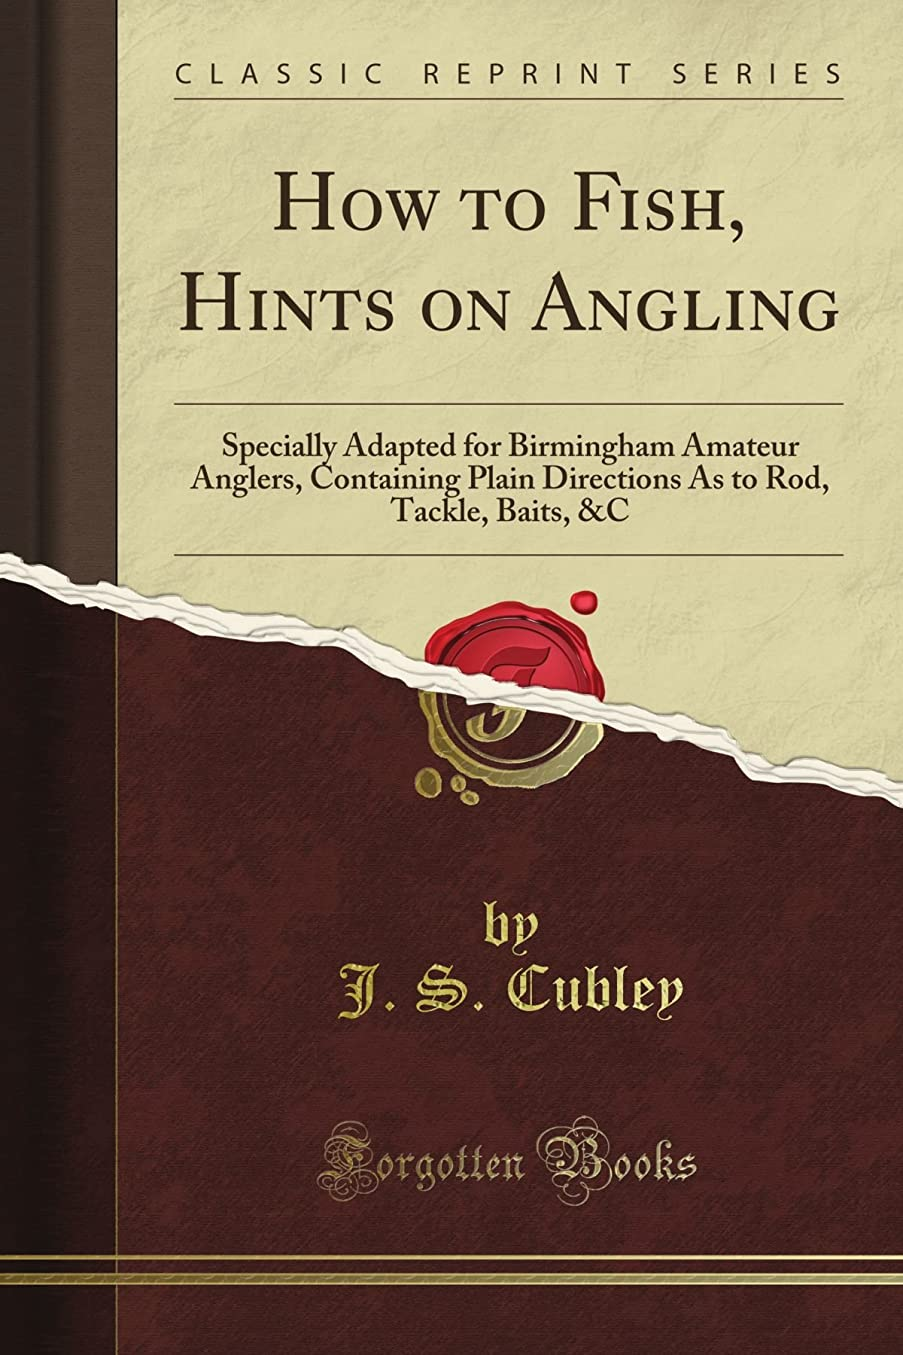 大洪水羊の服を着た狼風How to Fish, Hints on Angling: Specially Adapted for Birmingham Amateur Anglers, Containing Plain Directions As to Rod, Tackle, Baits, C (Classic Reprint)